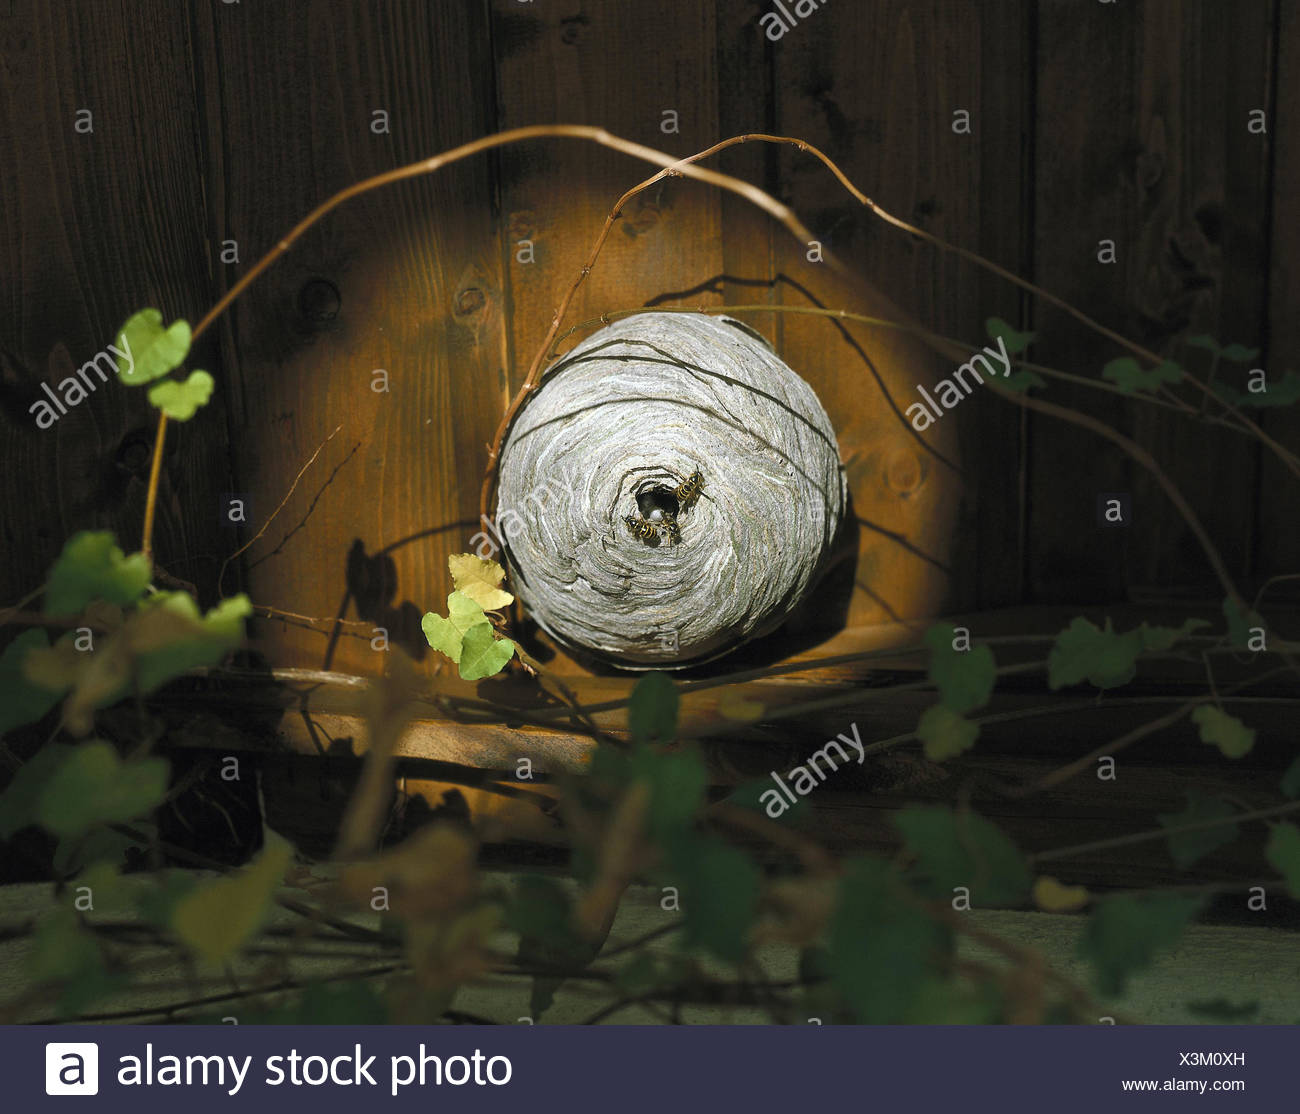 Holzvertäfelung Bilder Holzvertäfelung Stock Photos Holzvertäfelung Stock Images Alamy